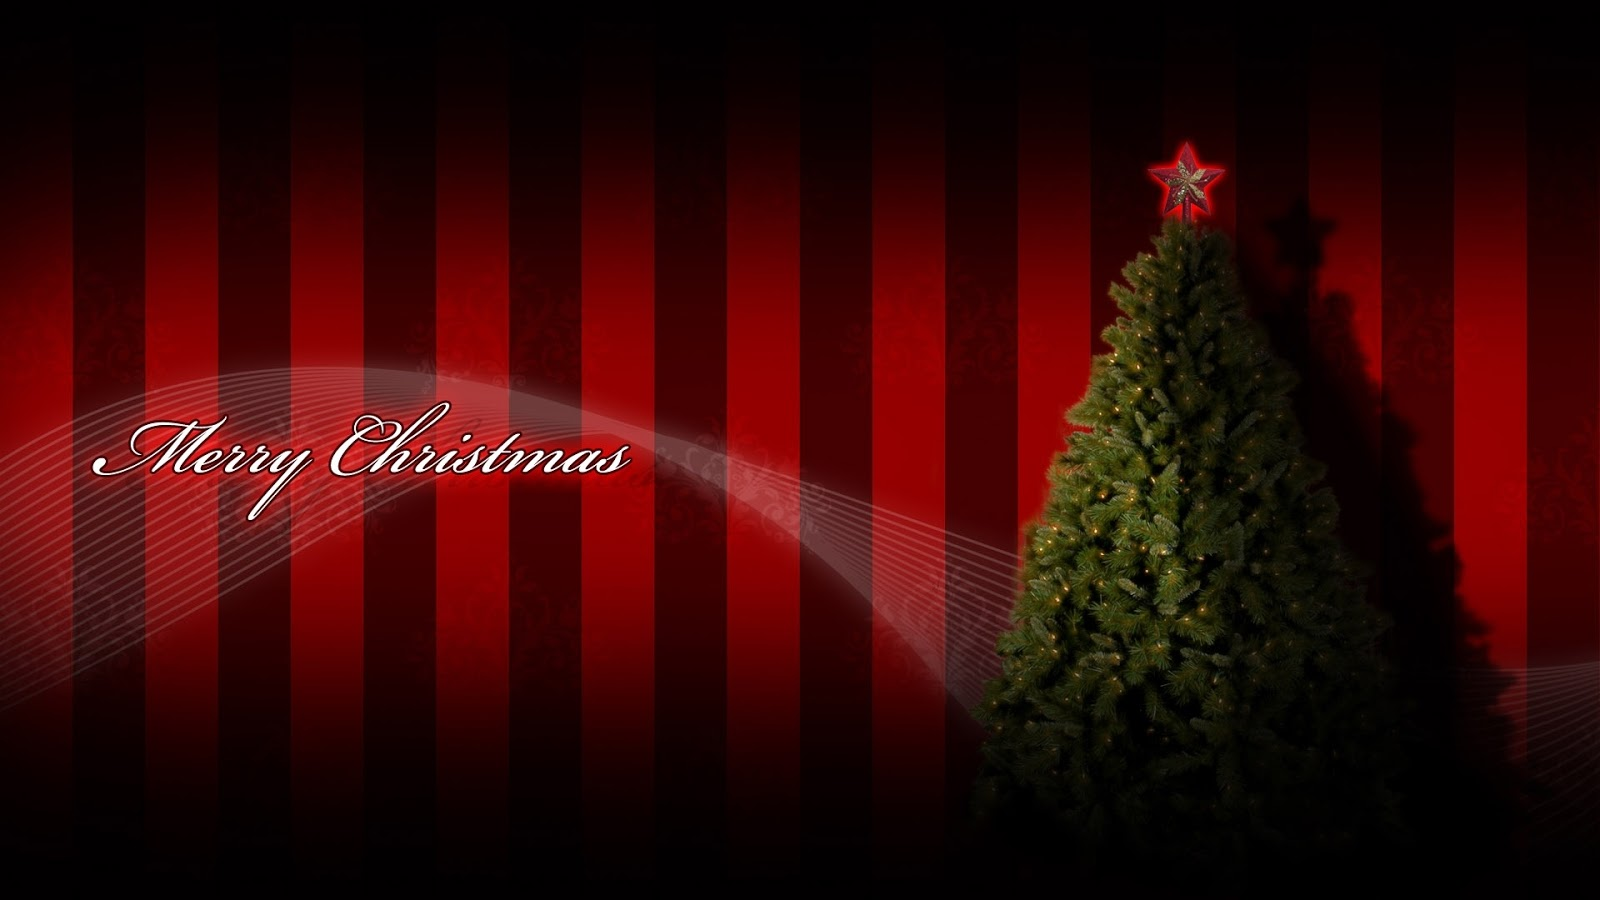 free download happy christmas full hd 50 wallpapers